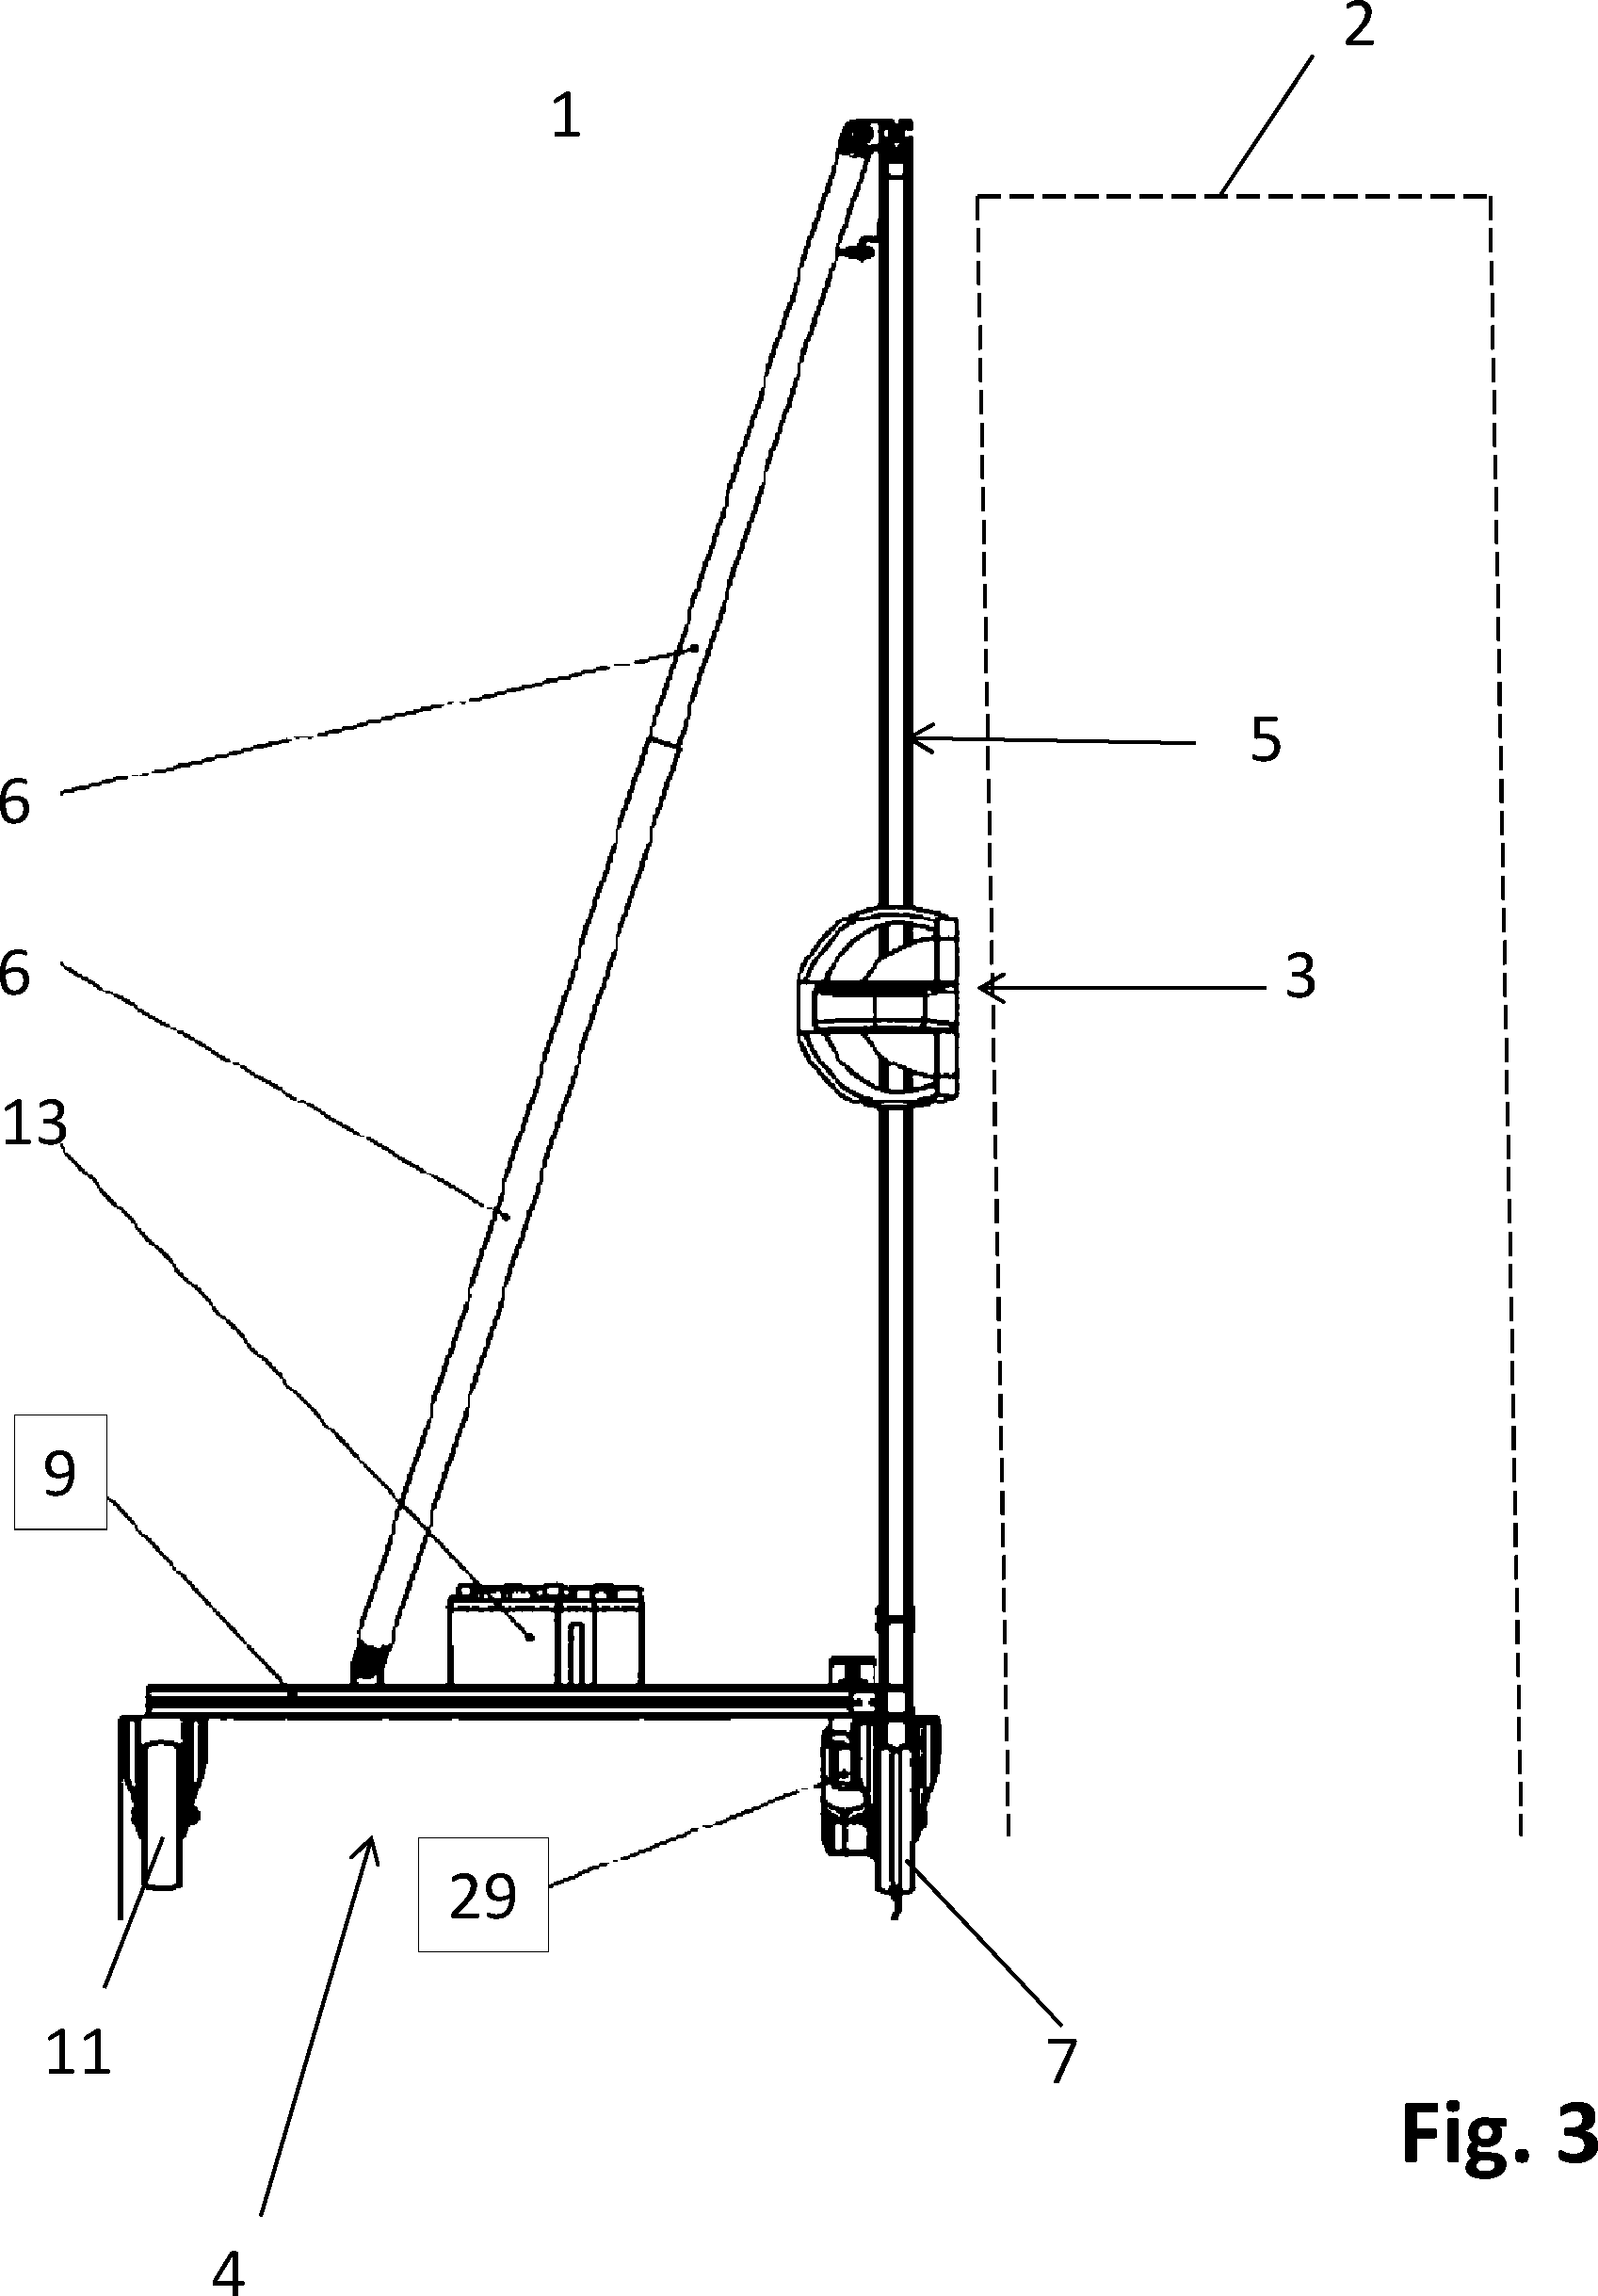 patent de202013104163u1 vorrichtung zum schneiden von hecken apparatus for trimming hedges. Black Bedroom Furniture Sets. Home Design Ideas